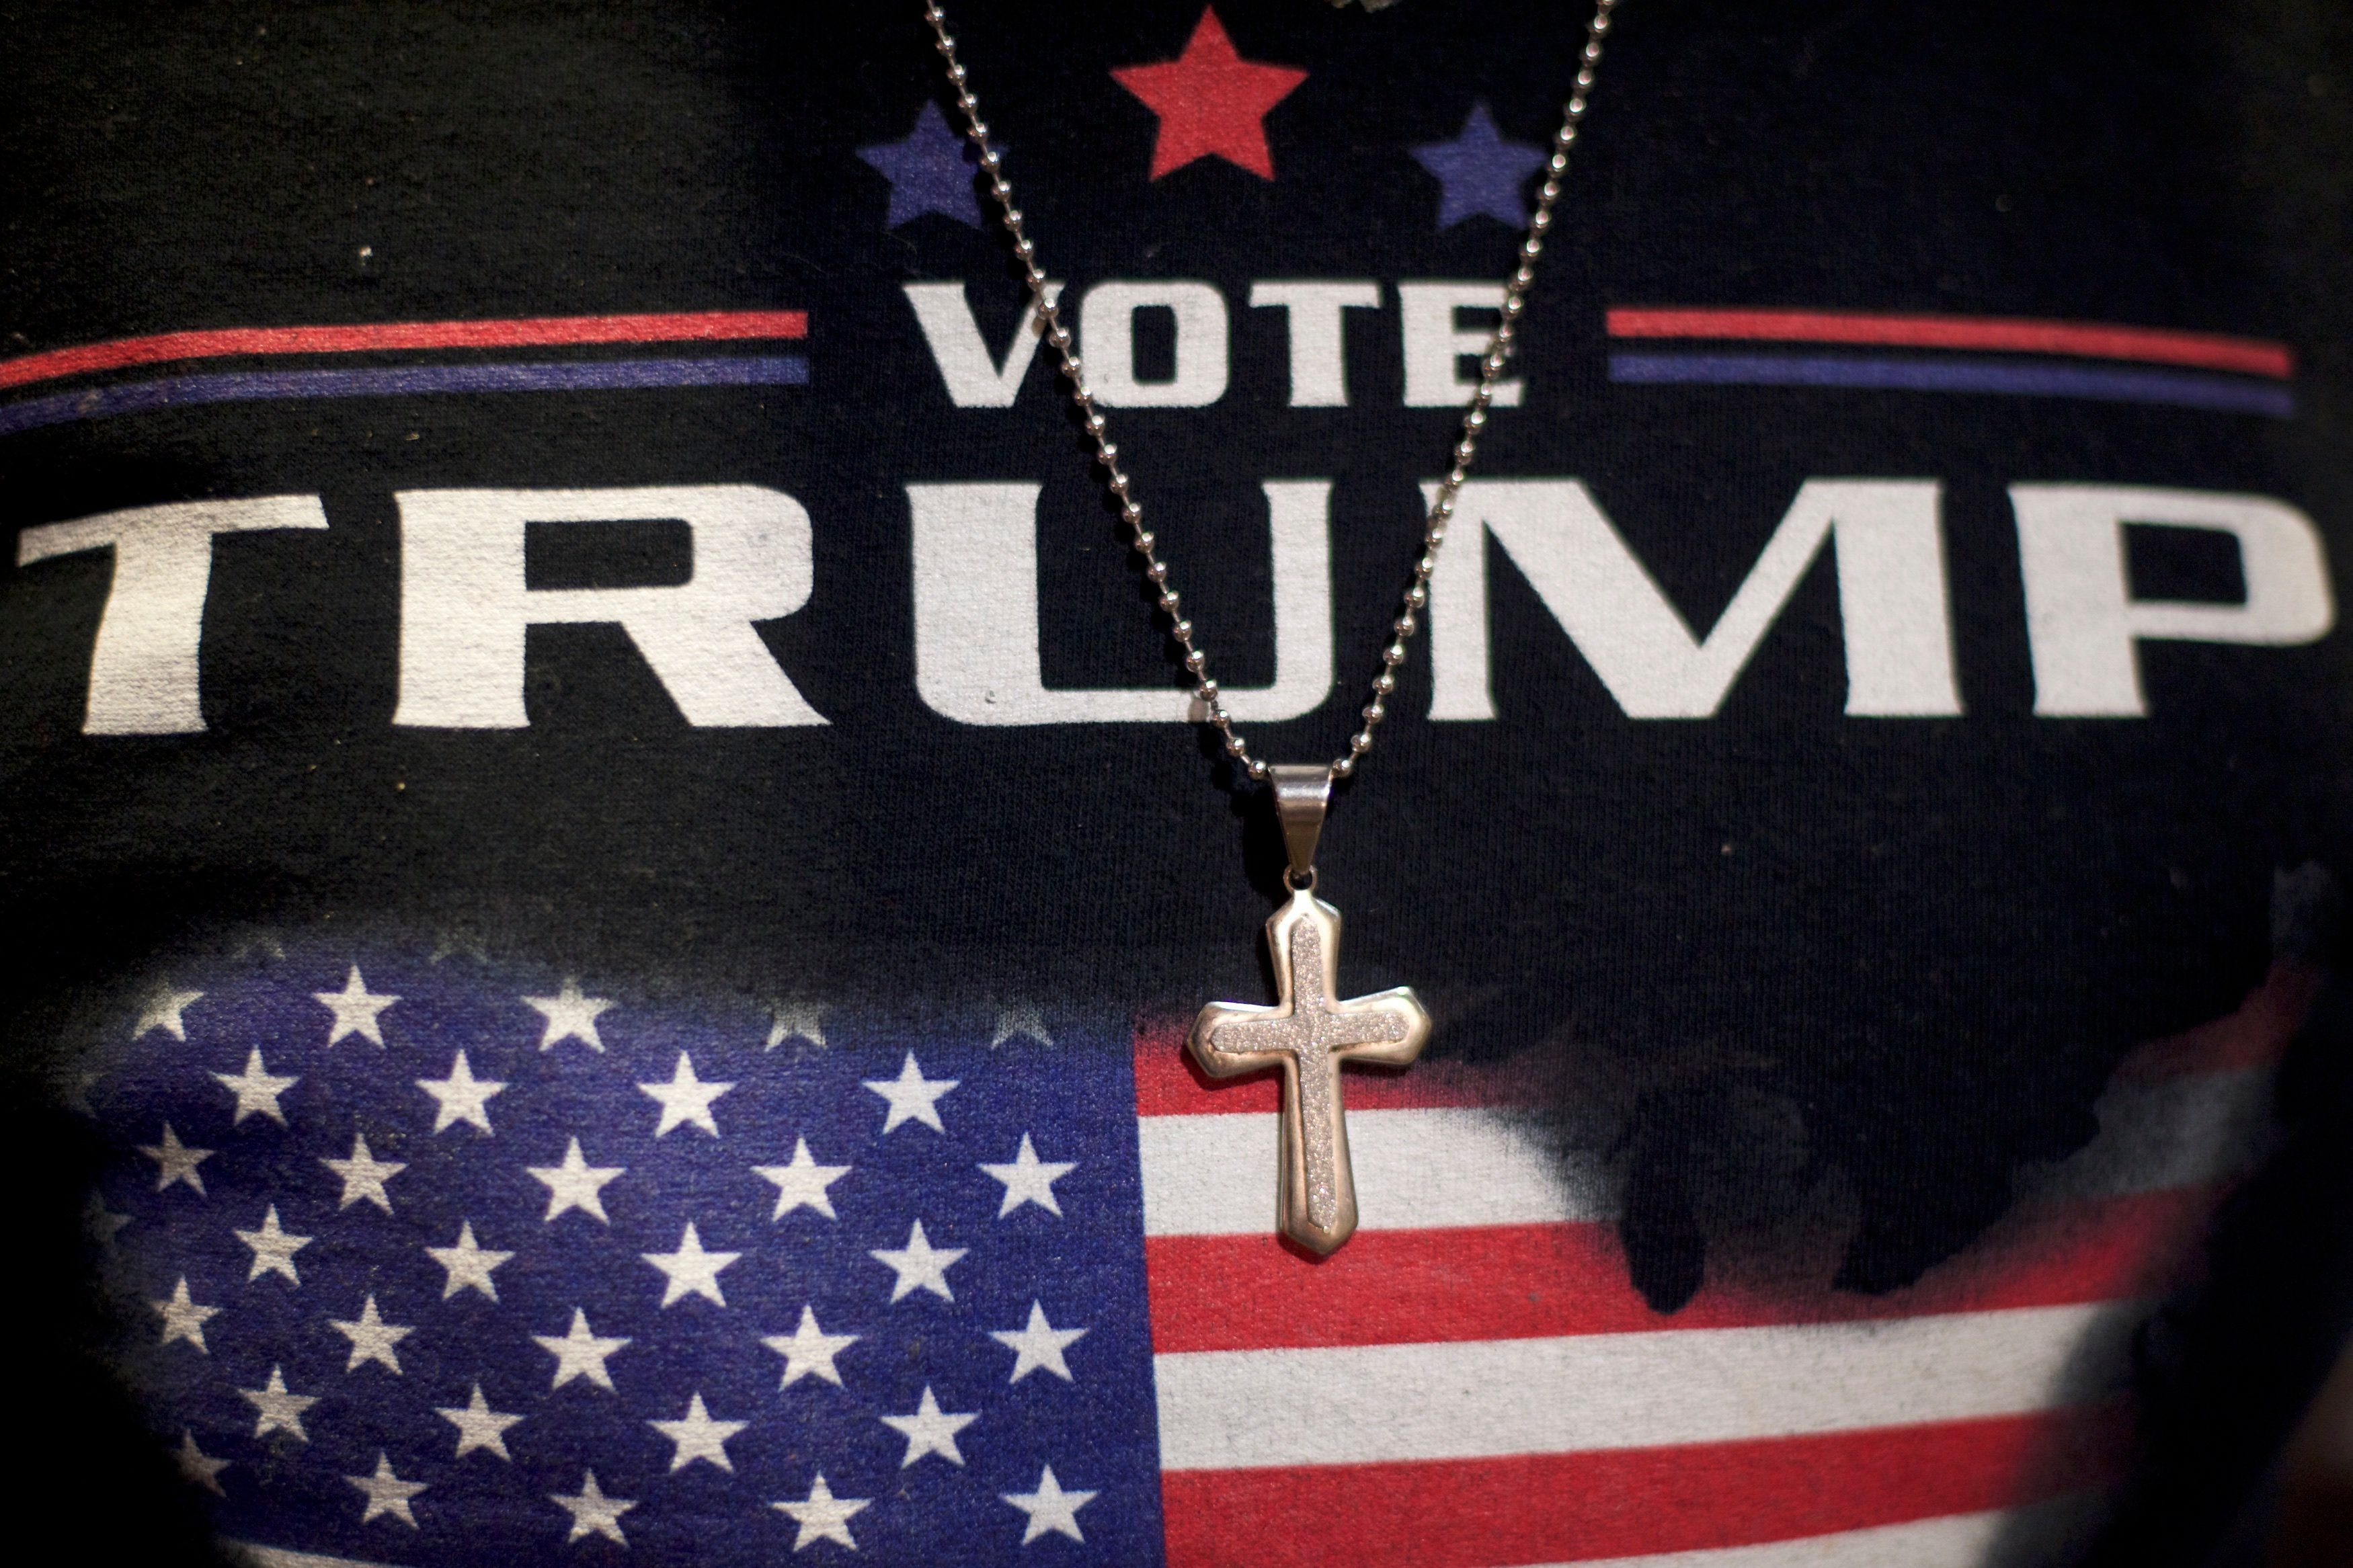 GETTYSBURG, PA - OCTOBER 22:  Minister E.J. Christian, 68, wears a Donald J. Trump themed shirt with a cross necklace before the Republican Presidential nominee holds an event at the Eisenhower Hotel and Conference Center October 22, 2016 in Gettysburg, Pennsylvania.  Trump delivered a policy speech announcing his plans for his first 100 days in office.  (Photo by Mark Makela/Getty Images)